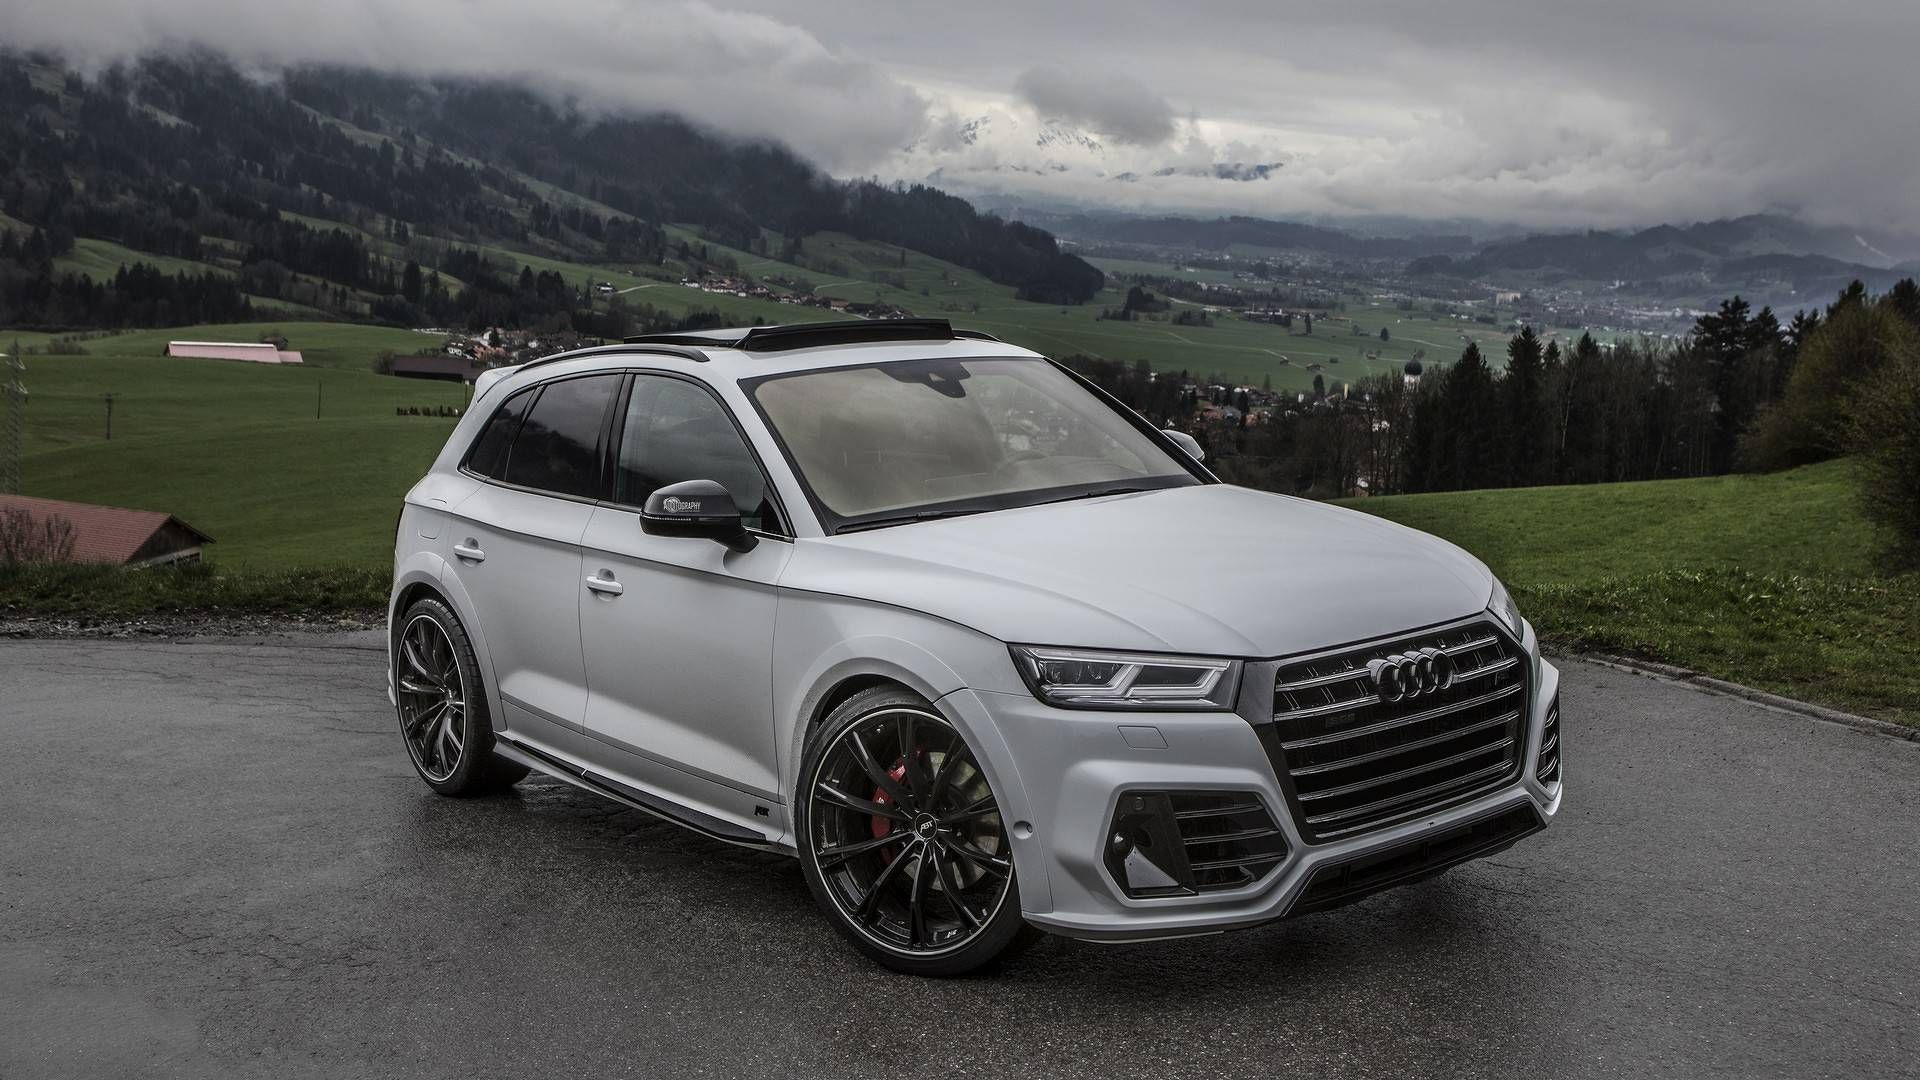 Audi Sq5 Upgraded By Abt Takes Scenic Route For Photo Shoot Sq5 Audi Abt